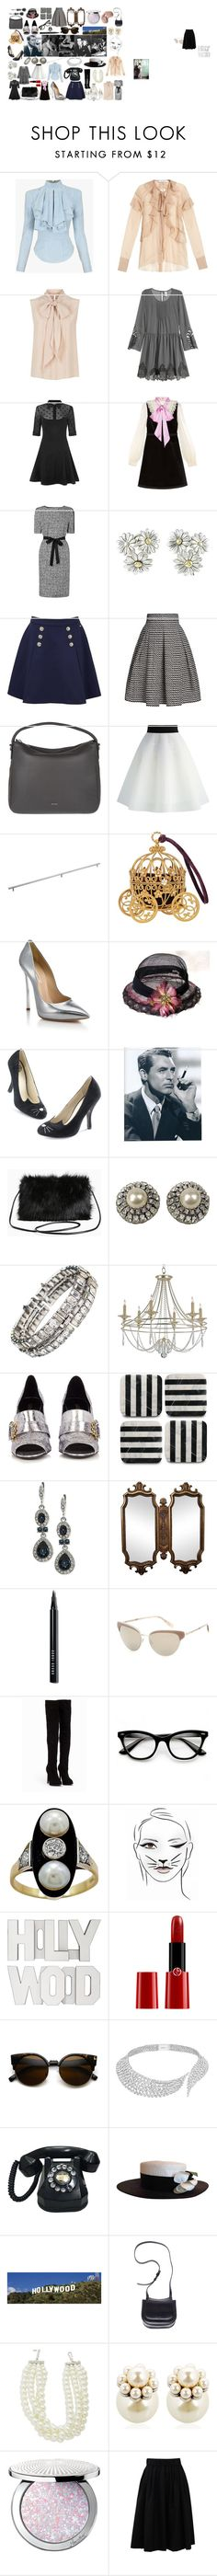 """""""MoodBoard - Hollywood anos 40"""" by mariana-bastos-i on Polyvore featuring Balmain, Givenchy, MaxMara, H&M, Collectif, Gucci, Tommy Hilfiger, Rumour London, Joop! e Chicwish"""